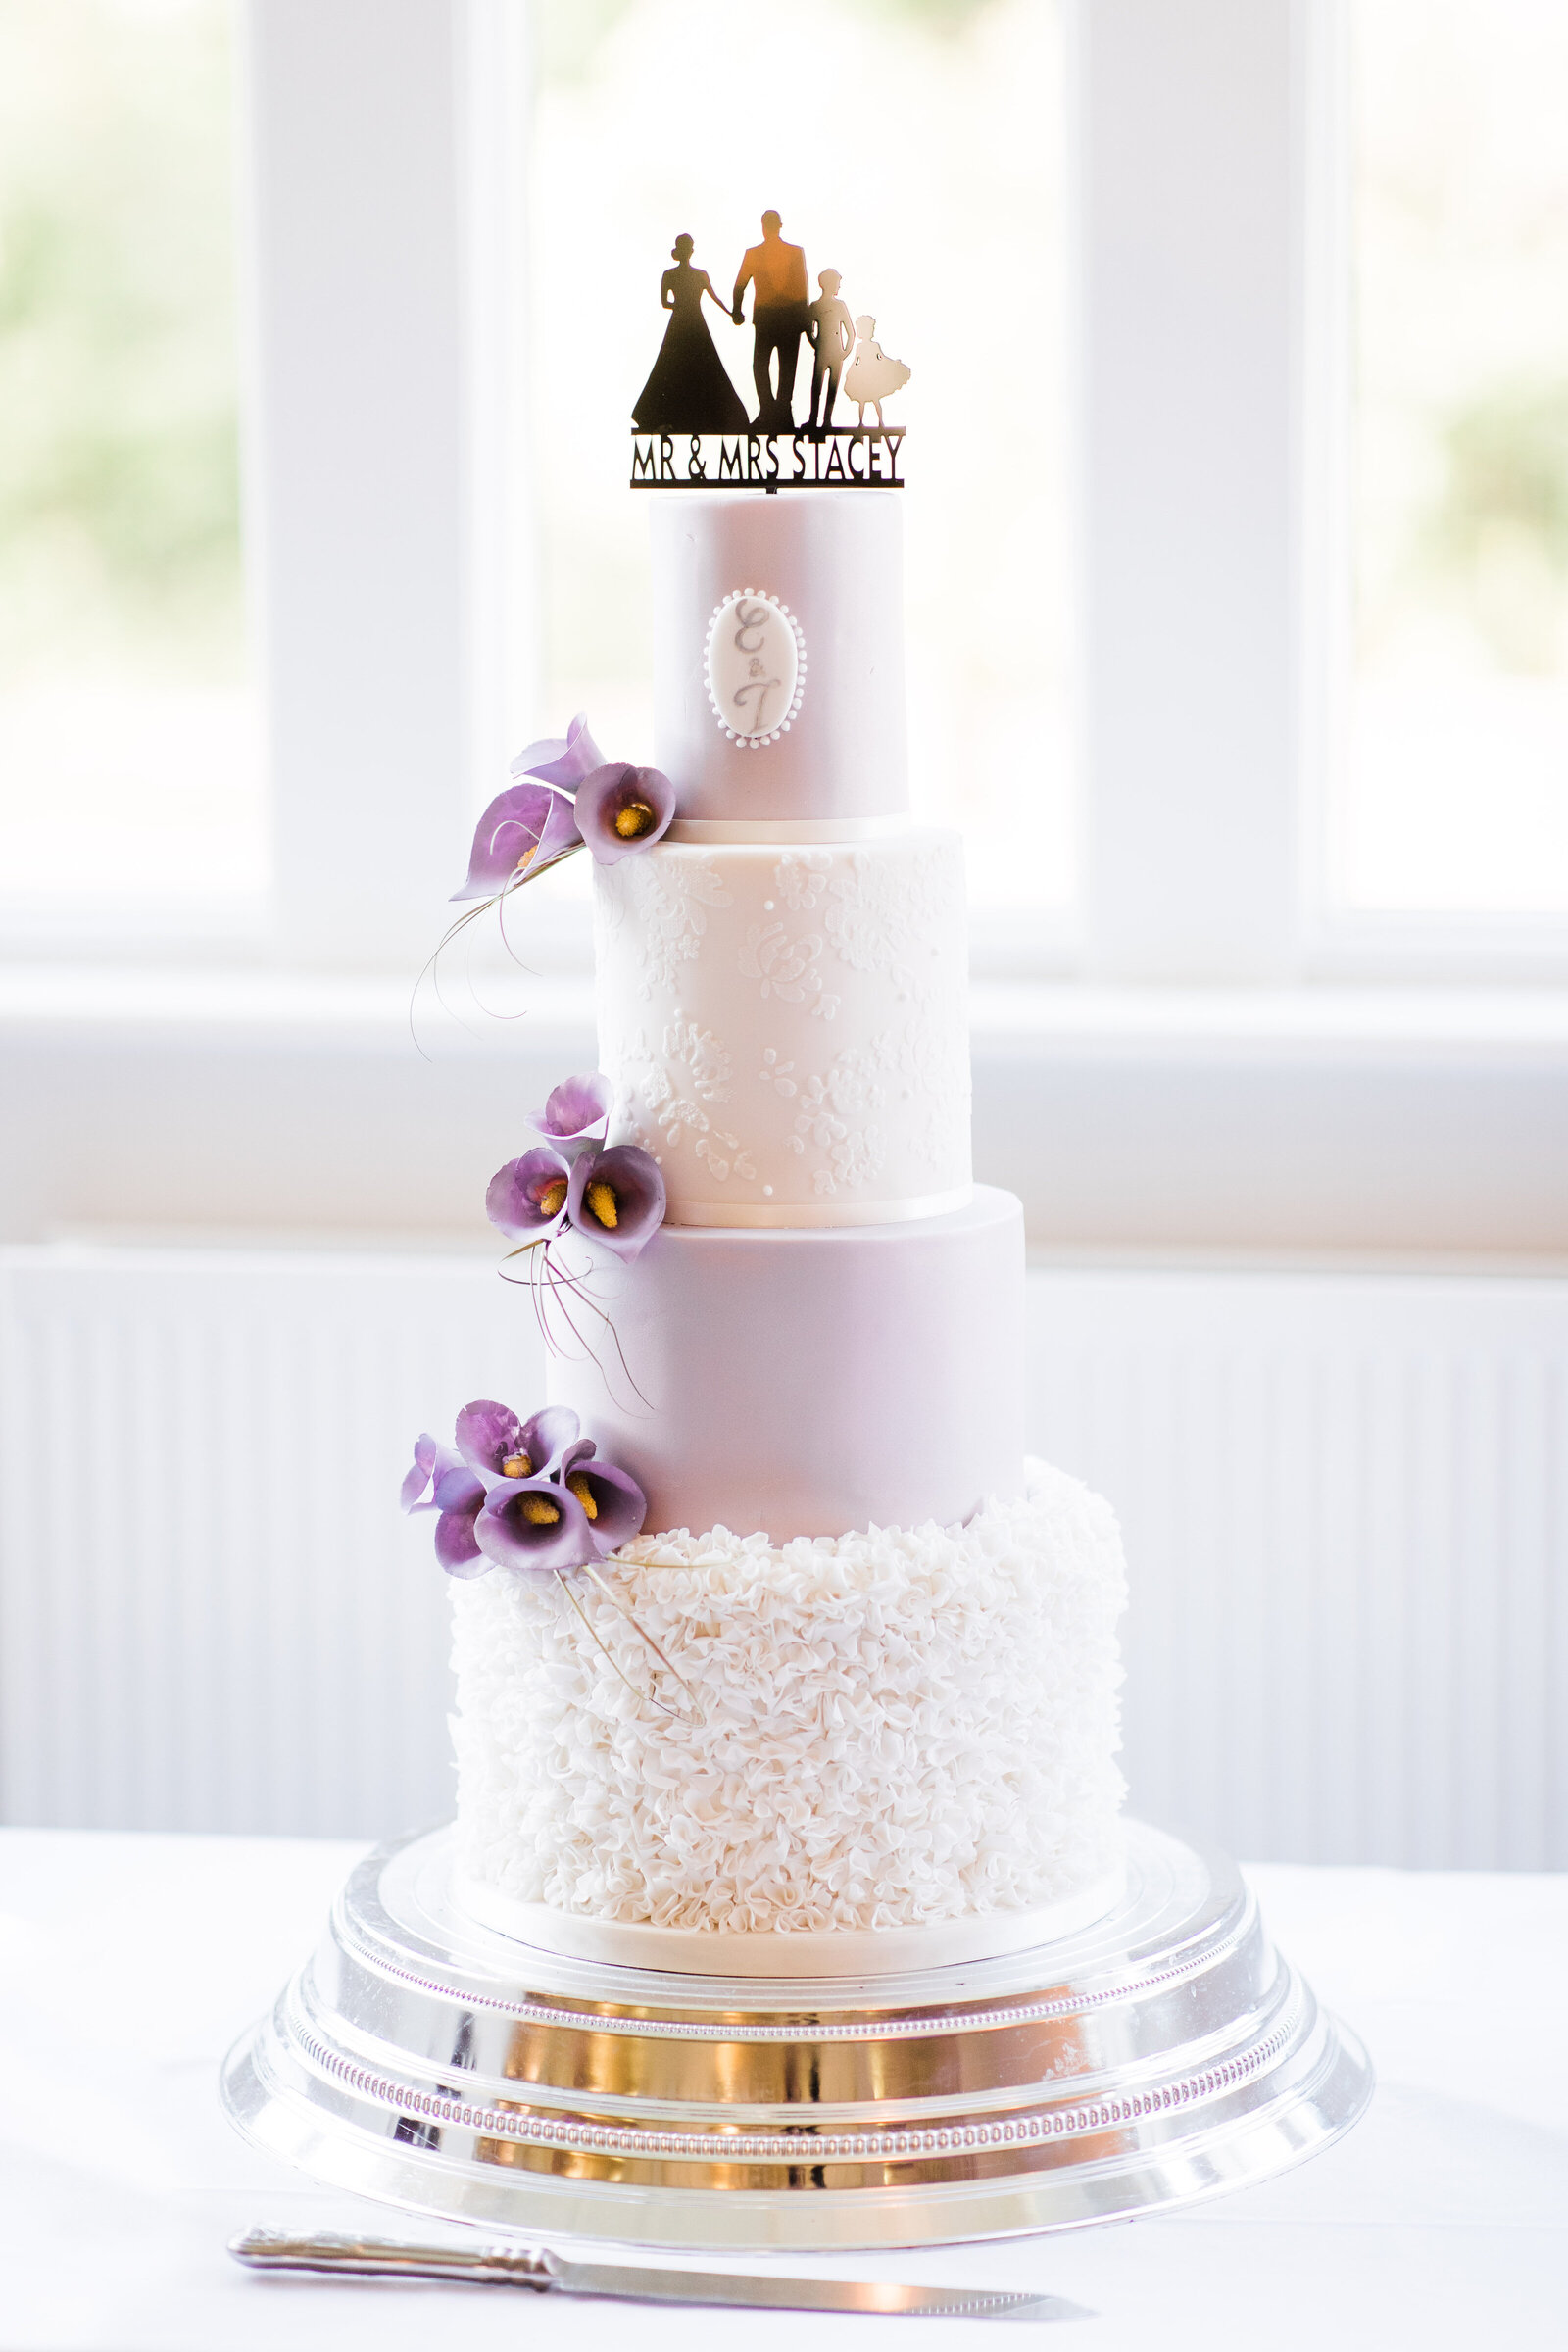 cake - Aimee Joy Photography-5